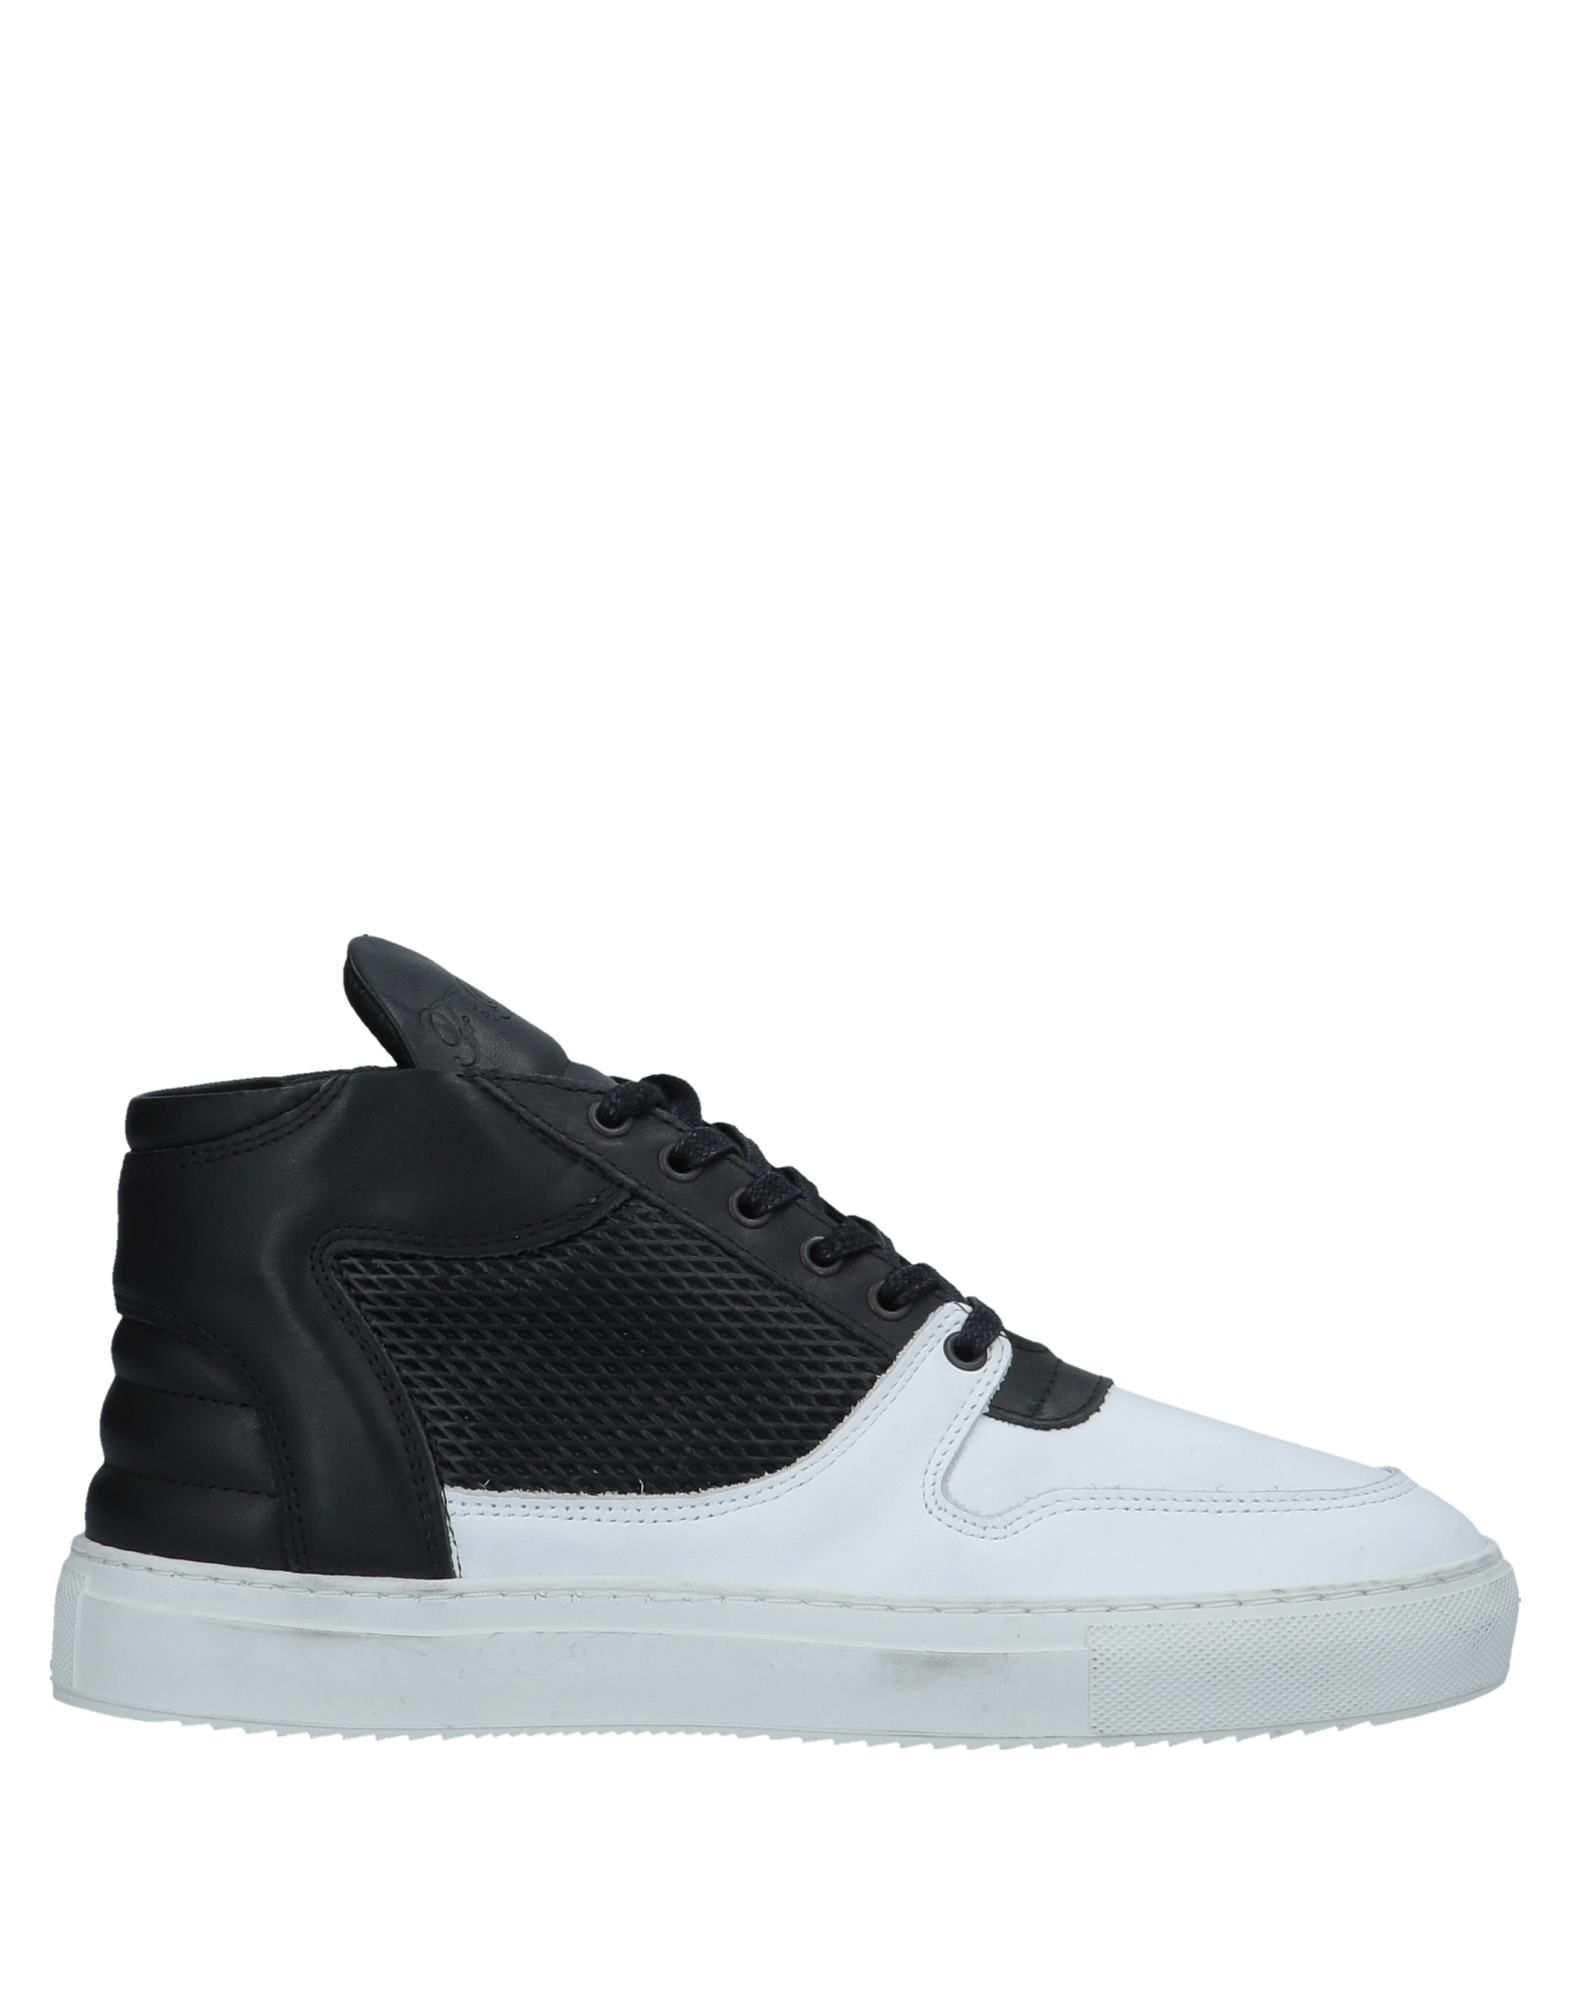 Sneakers Filling Pieces Uomo - 11538565GM